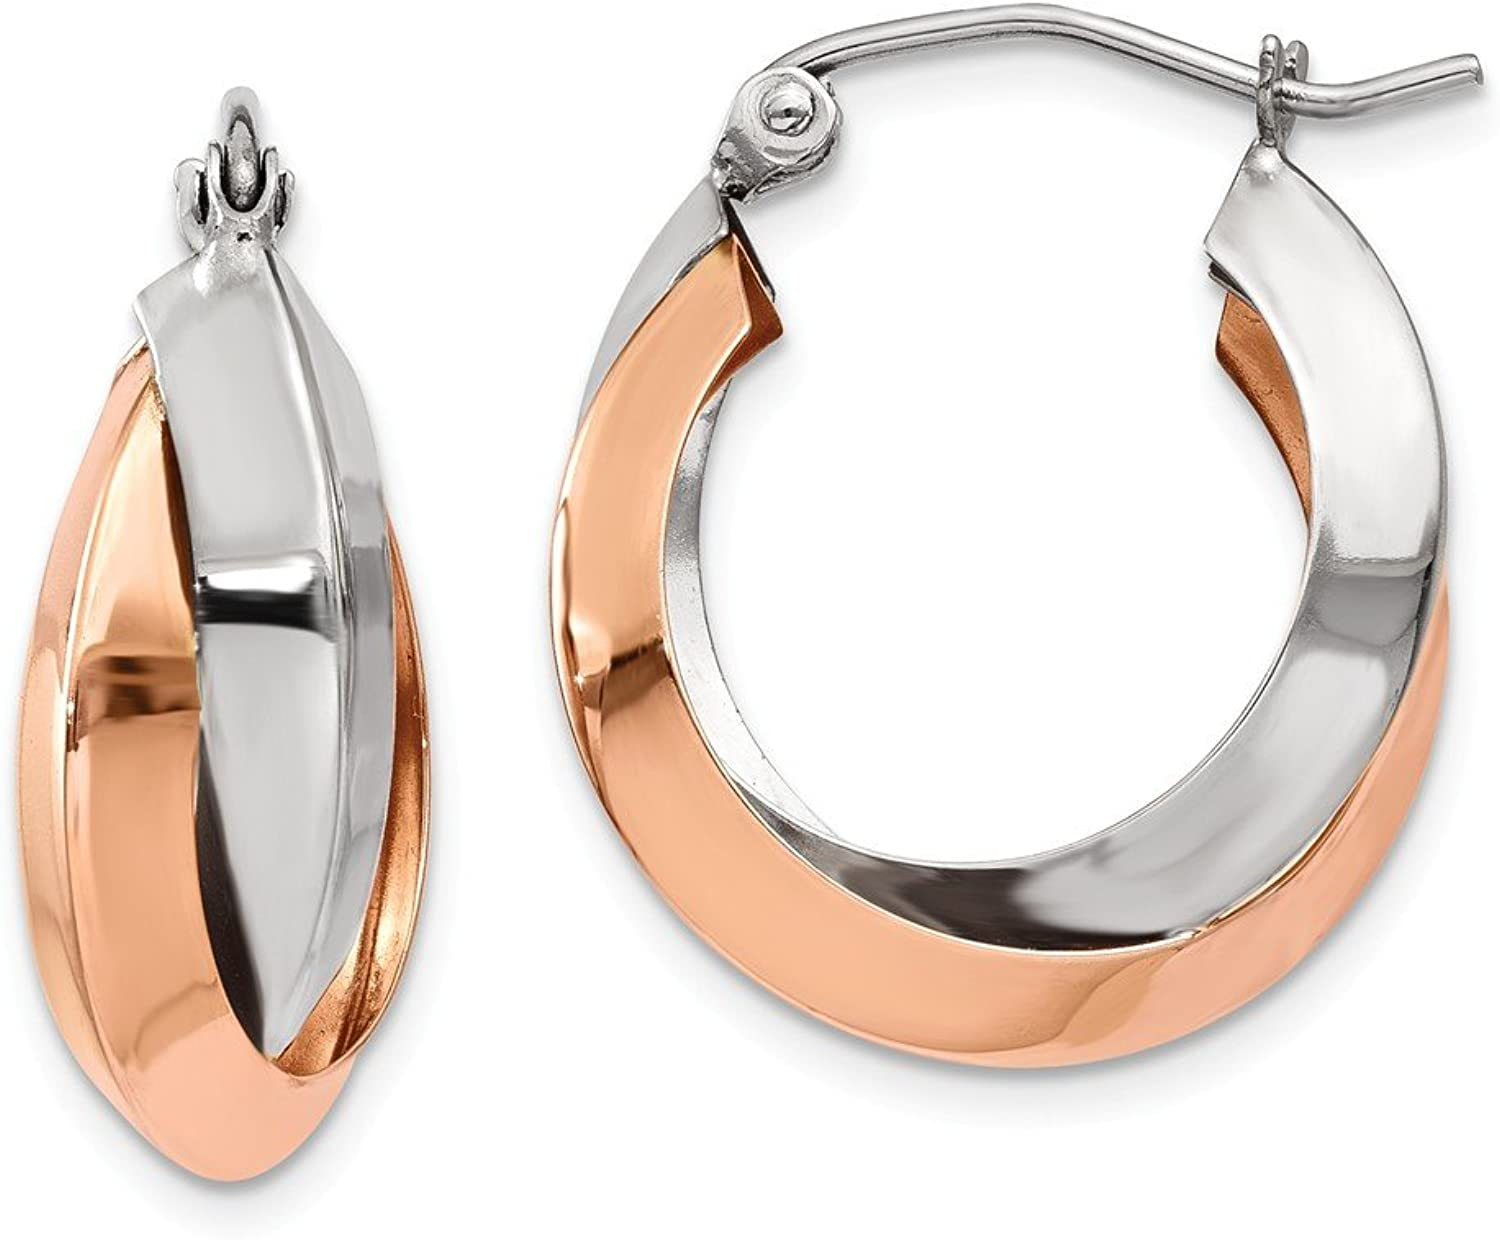 Beautiful White and yellow gold 14K Whiteandyellowgold 14k pink and White gold Polished Oval Hoop Earrings